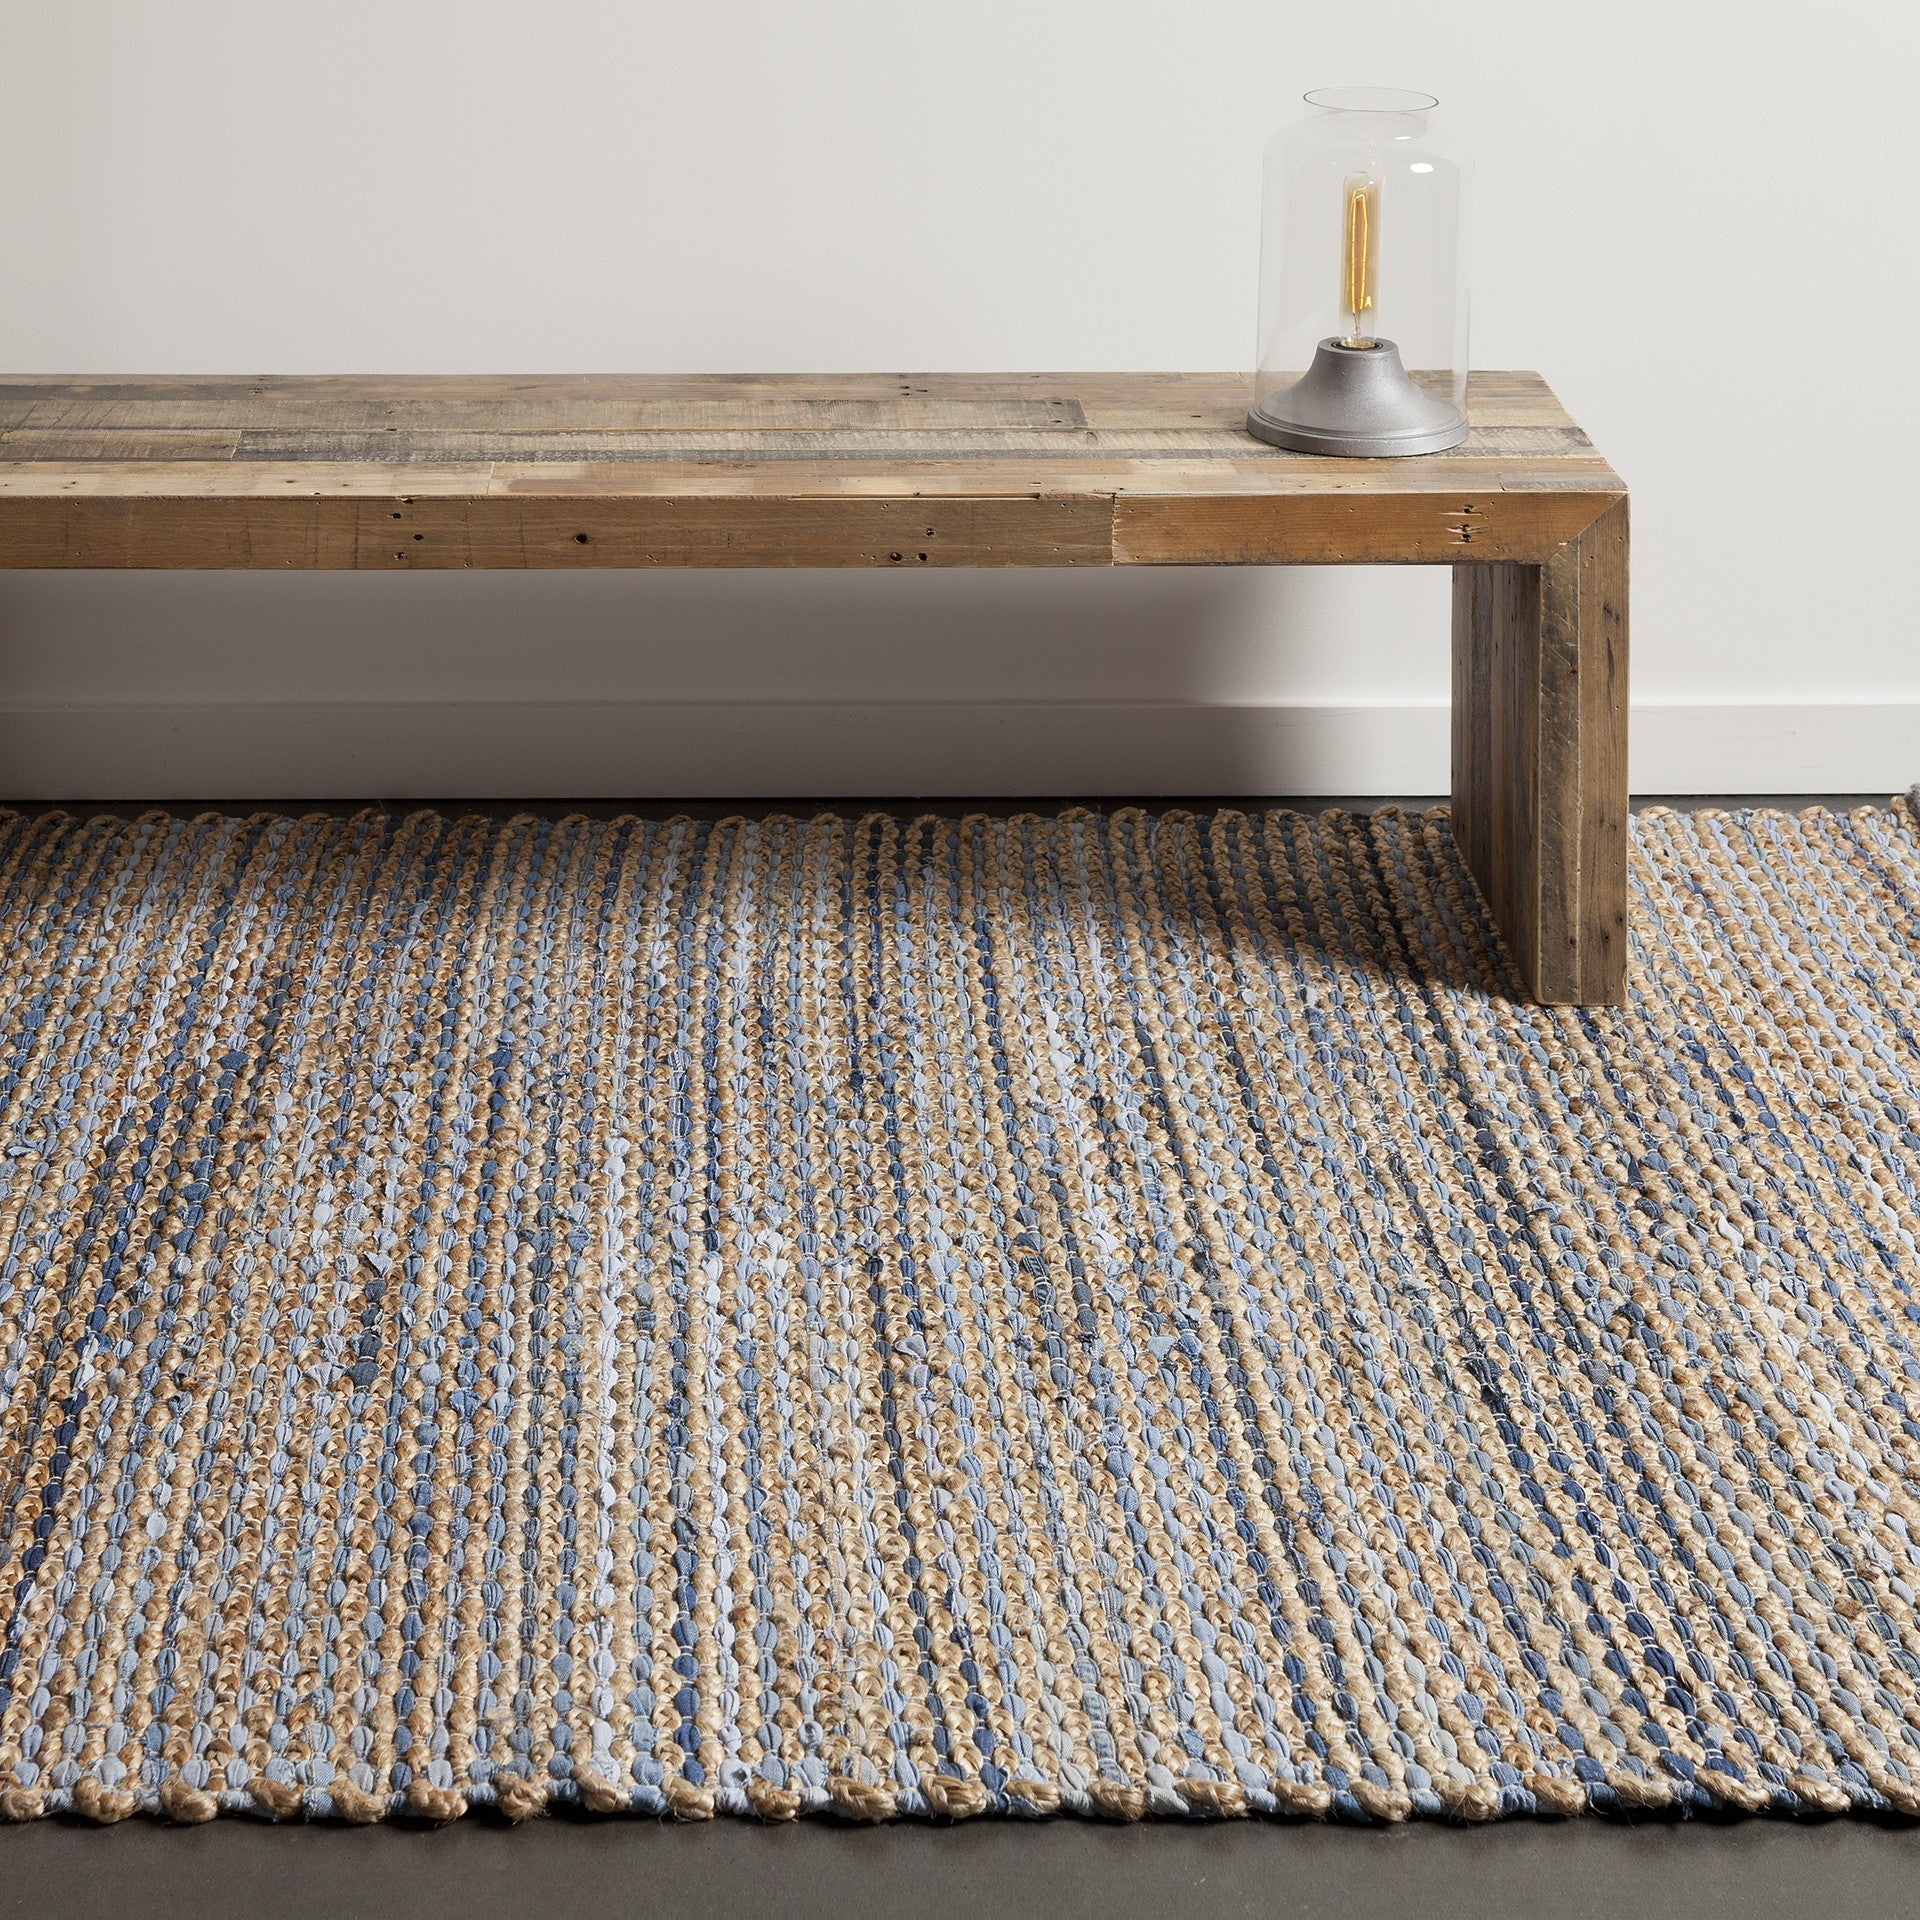 Easton Collection Hand Woven Area Rug In Blue Tan Grey Design By